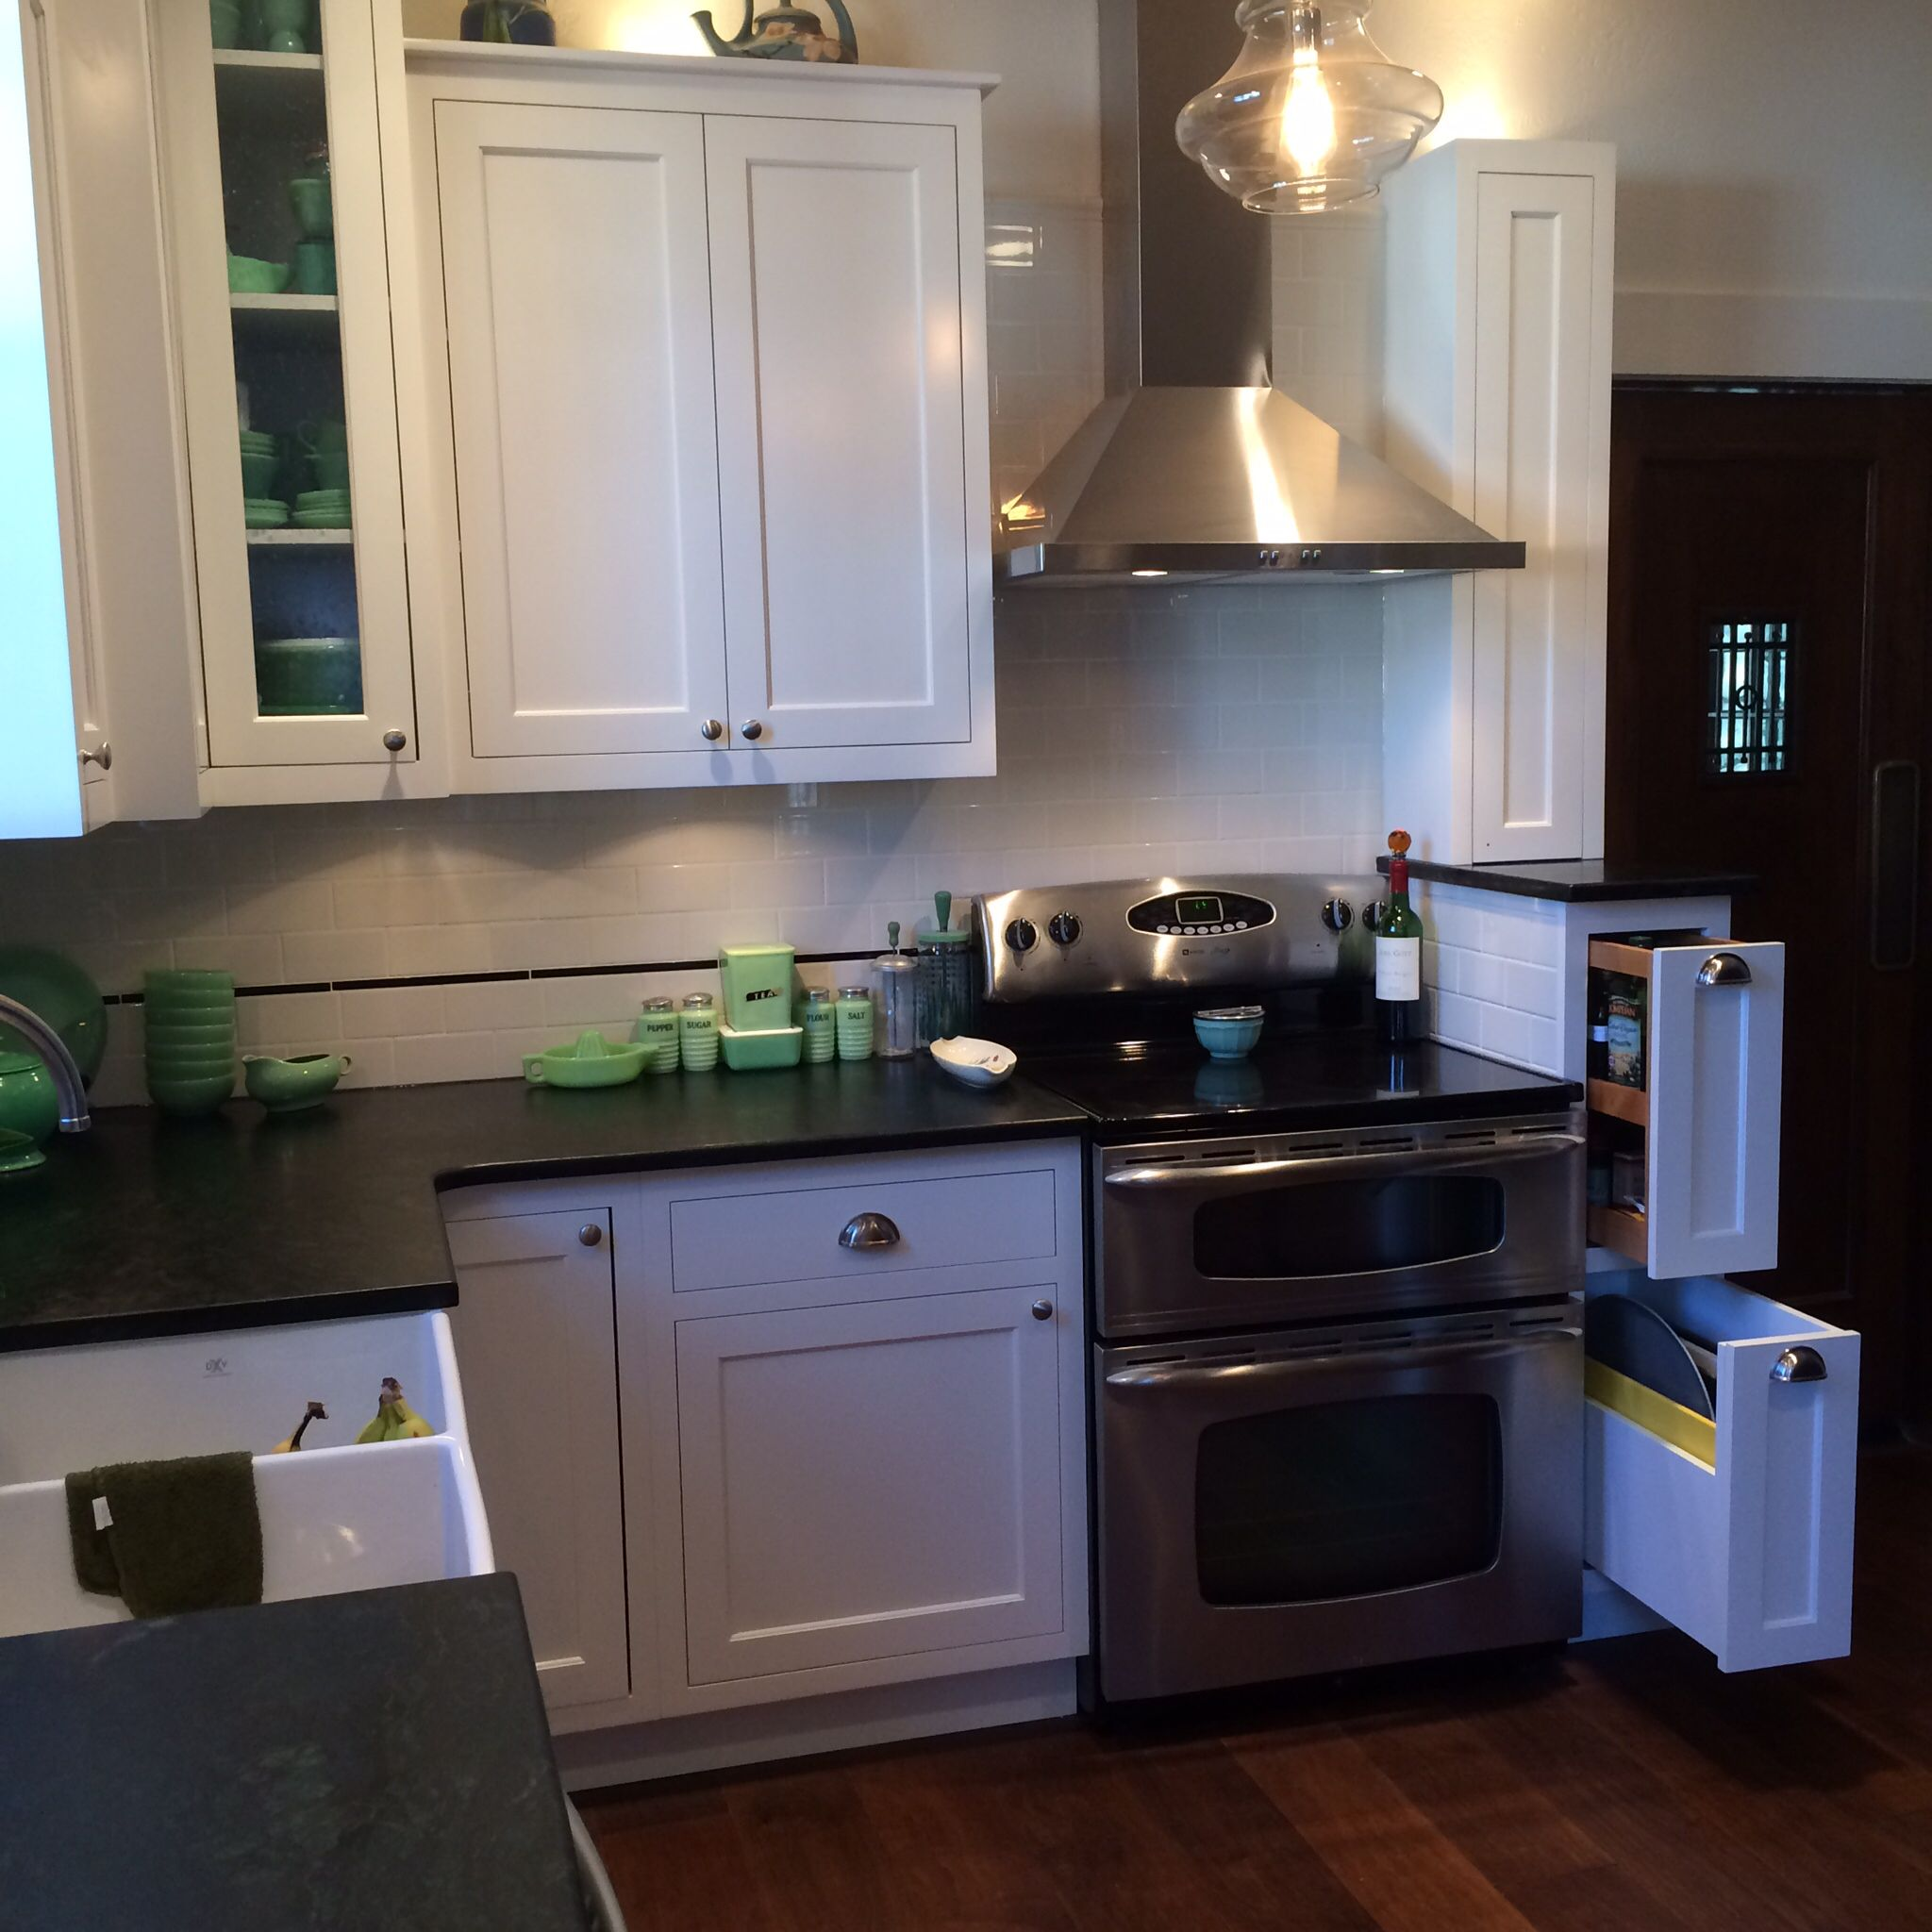 Custom white kitchen with inset cabinets, subway tile w/ glass bar liner and soapstone countertops, Caldera Design LLCC